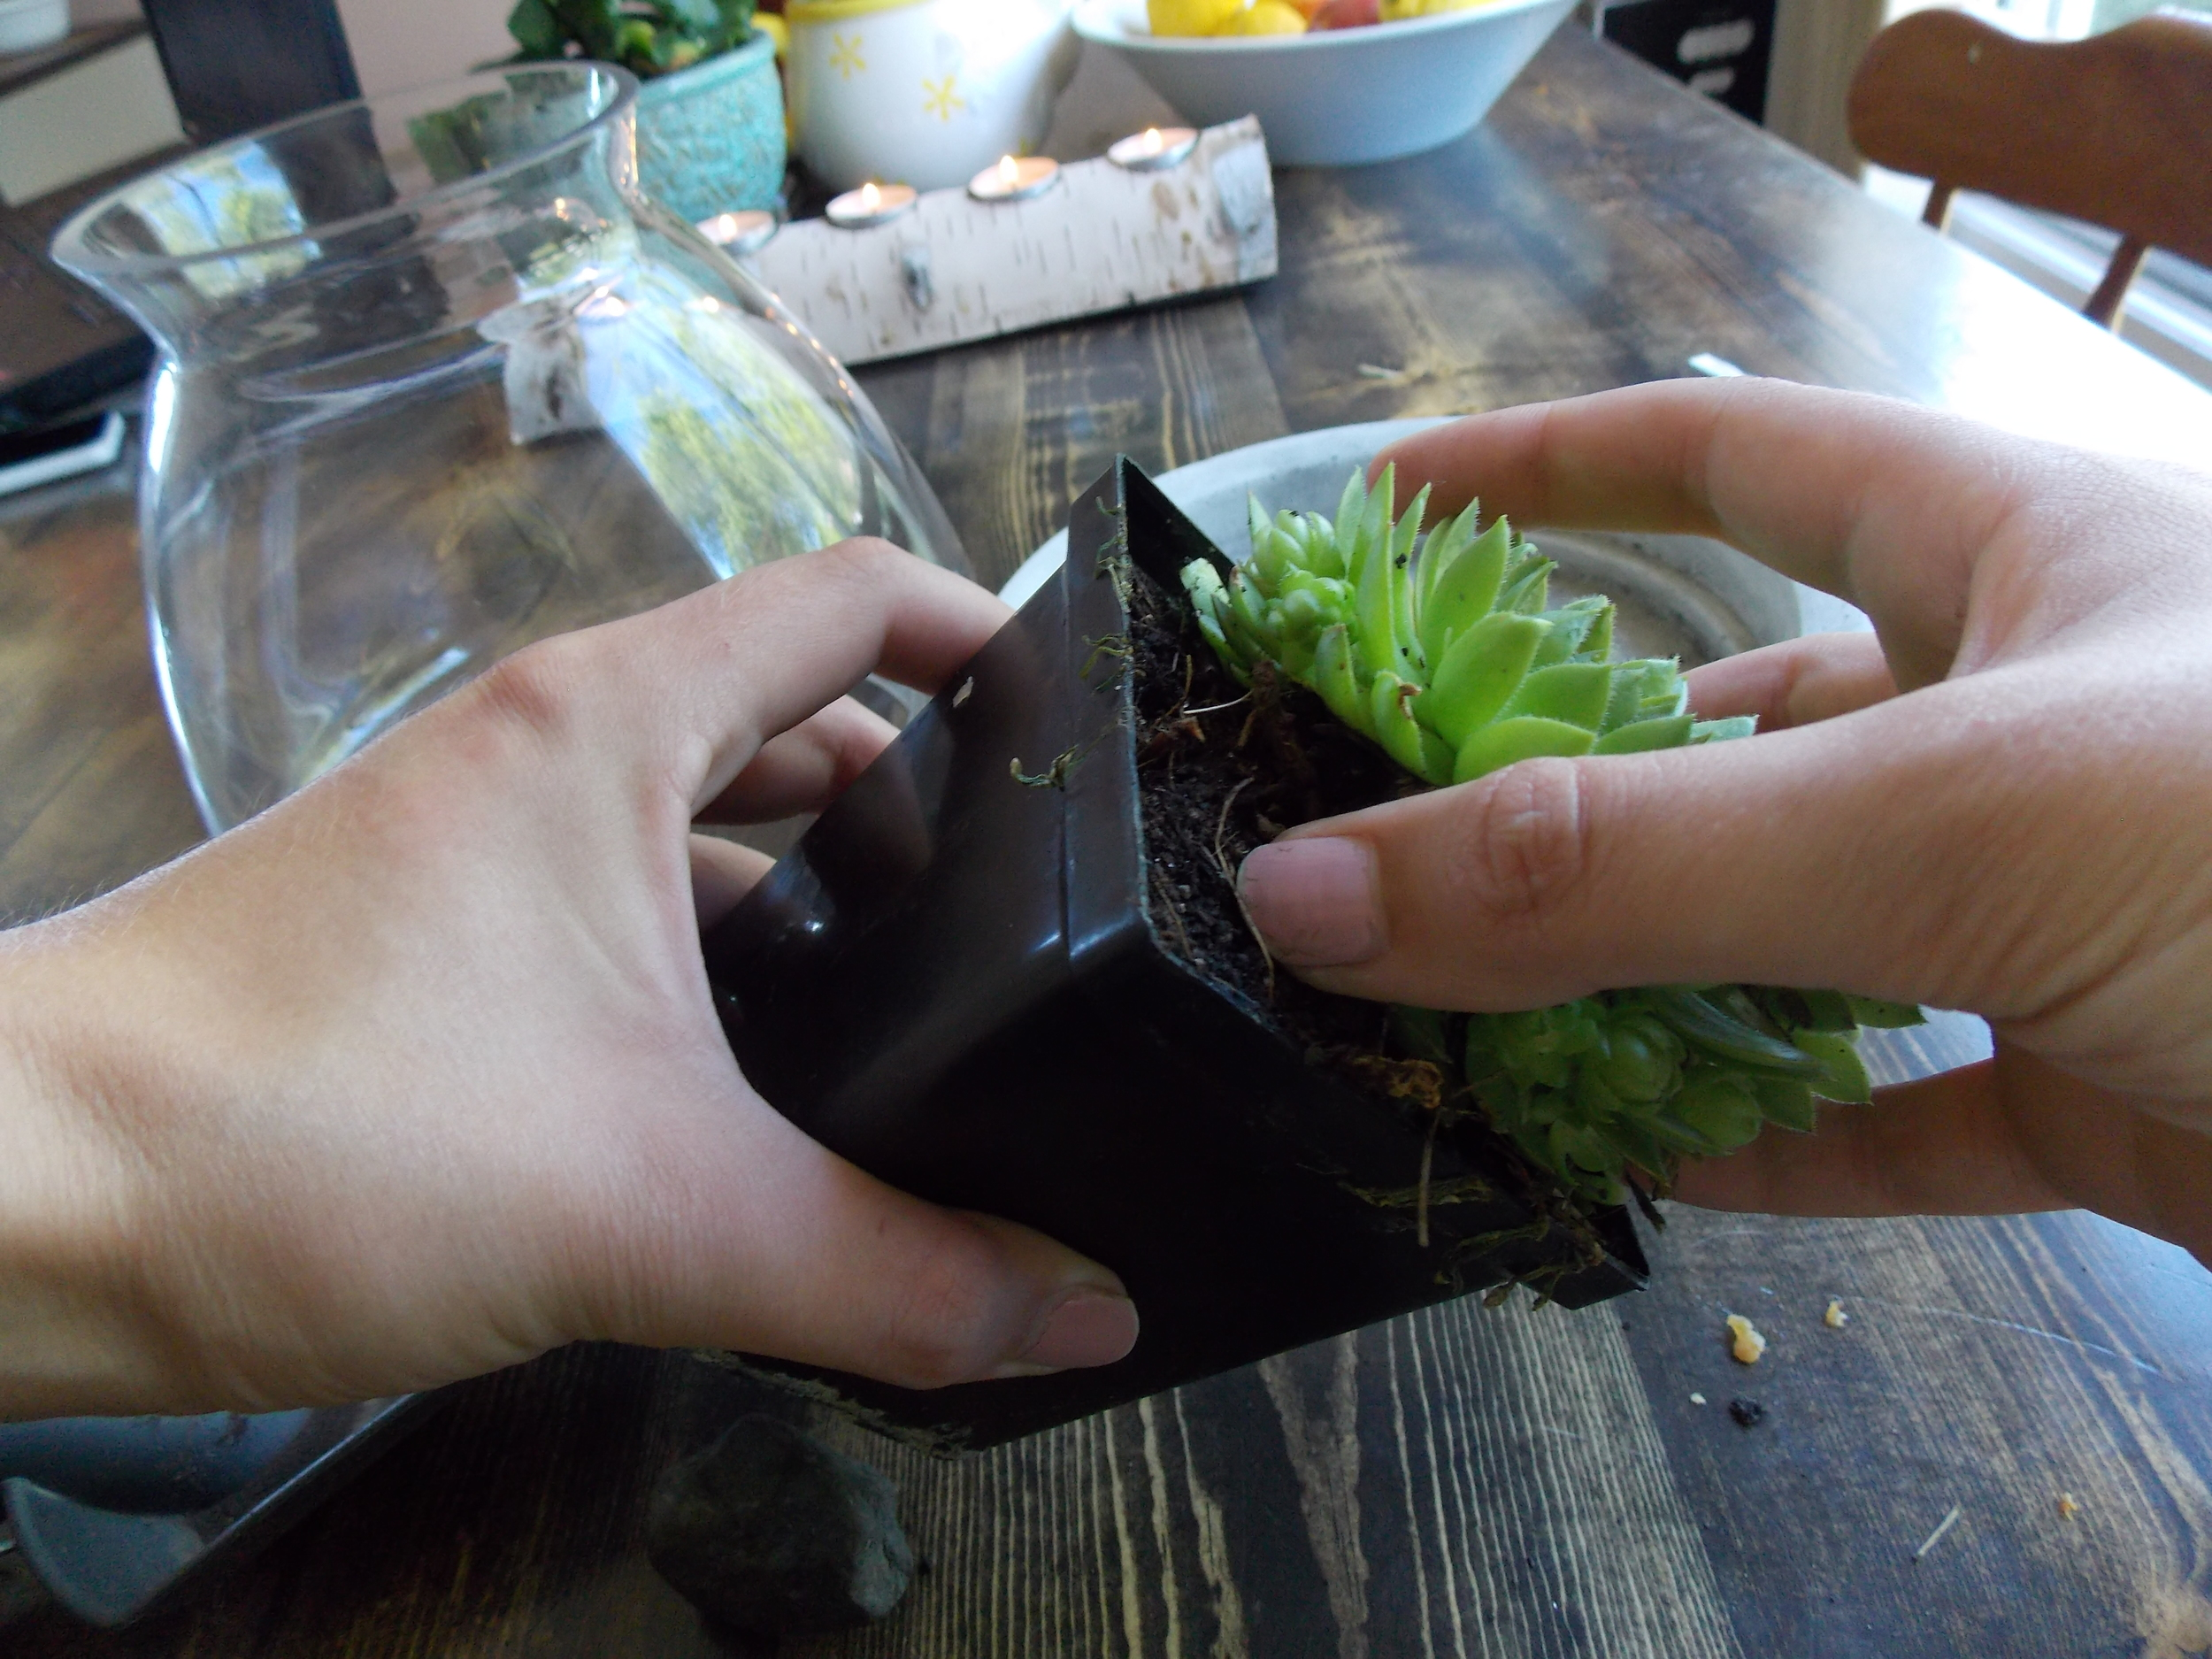 Squeeze the sides of the plastic container to loosen the plant, then pull from the top gently on a slant to pull the plant out of the container.